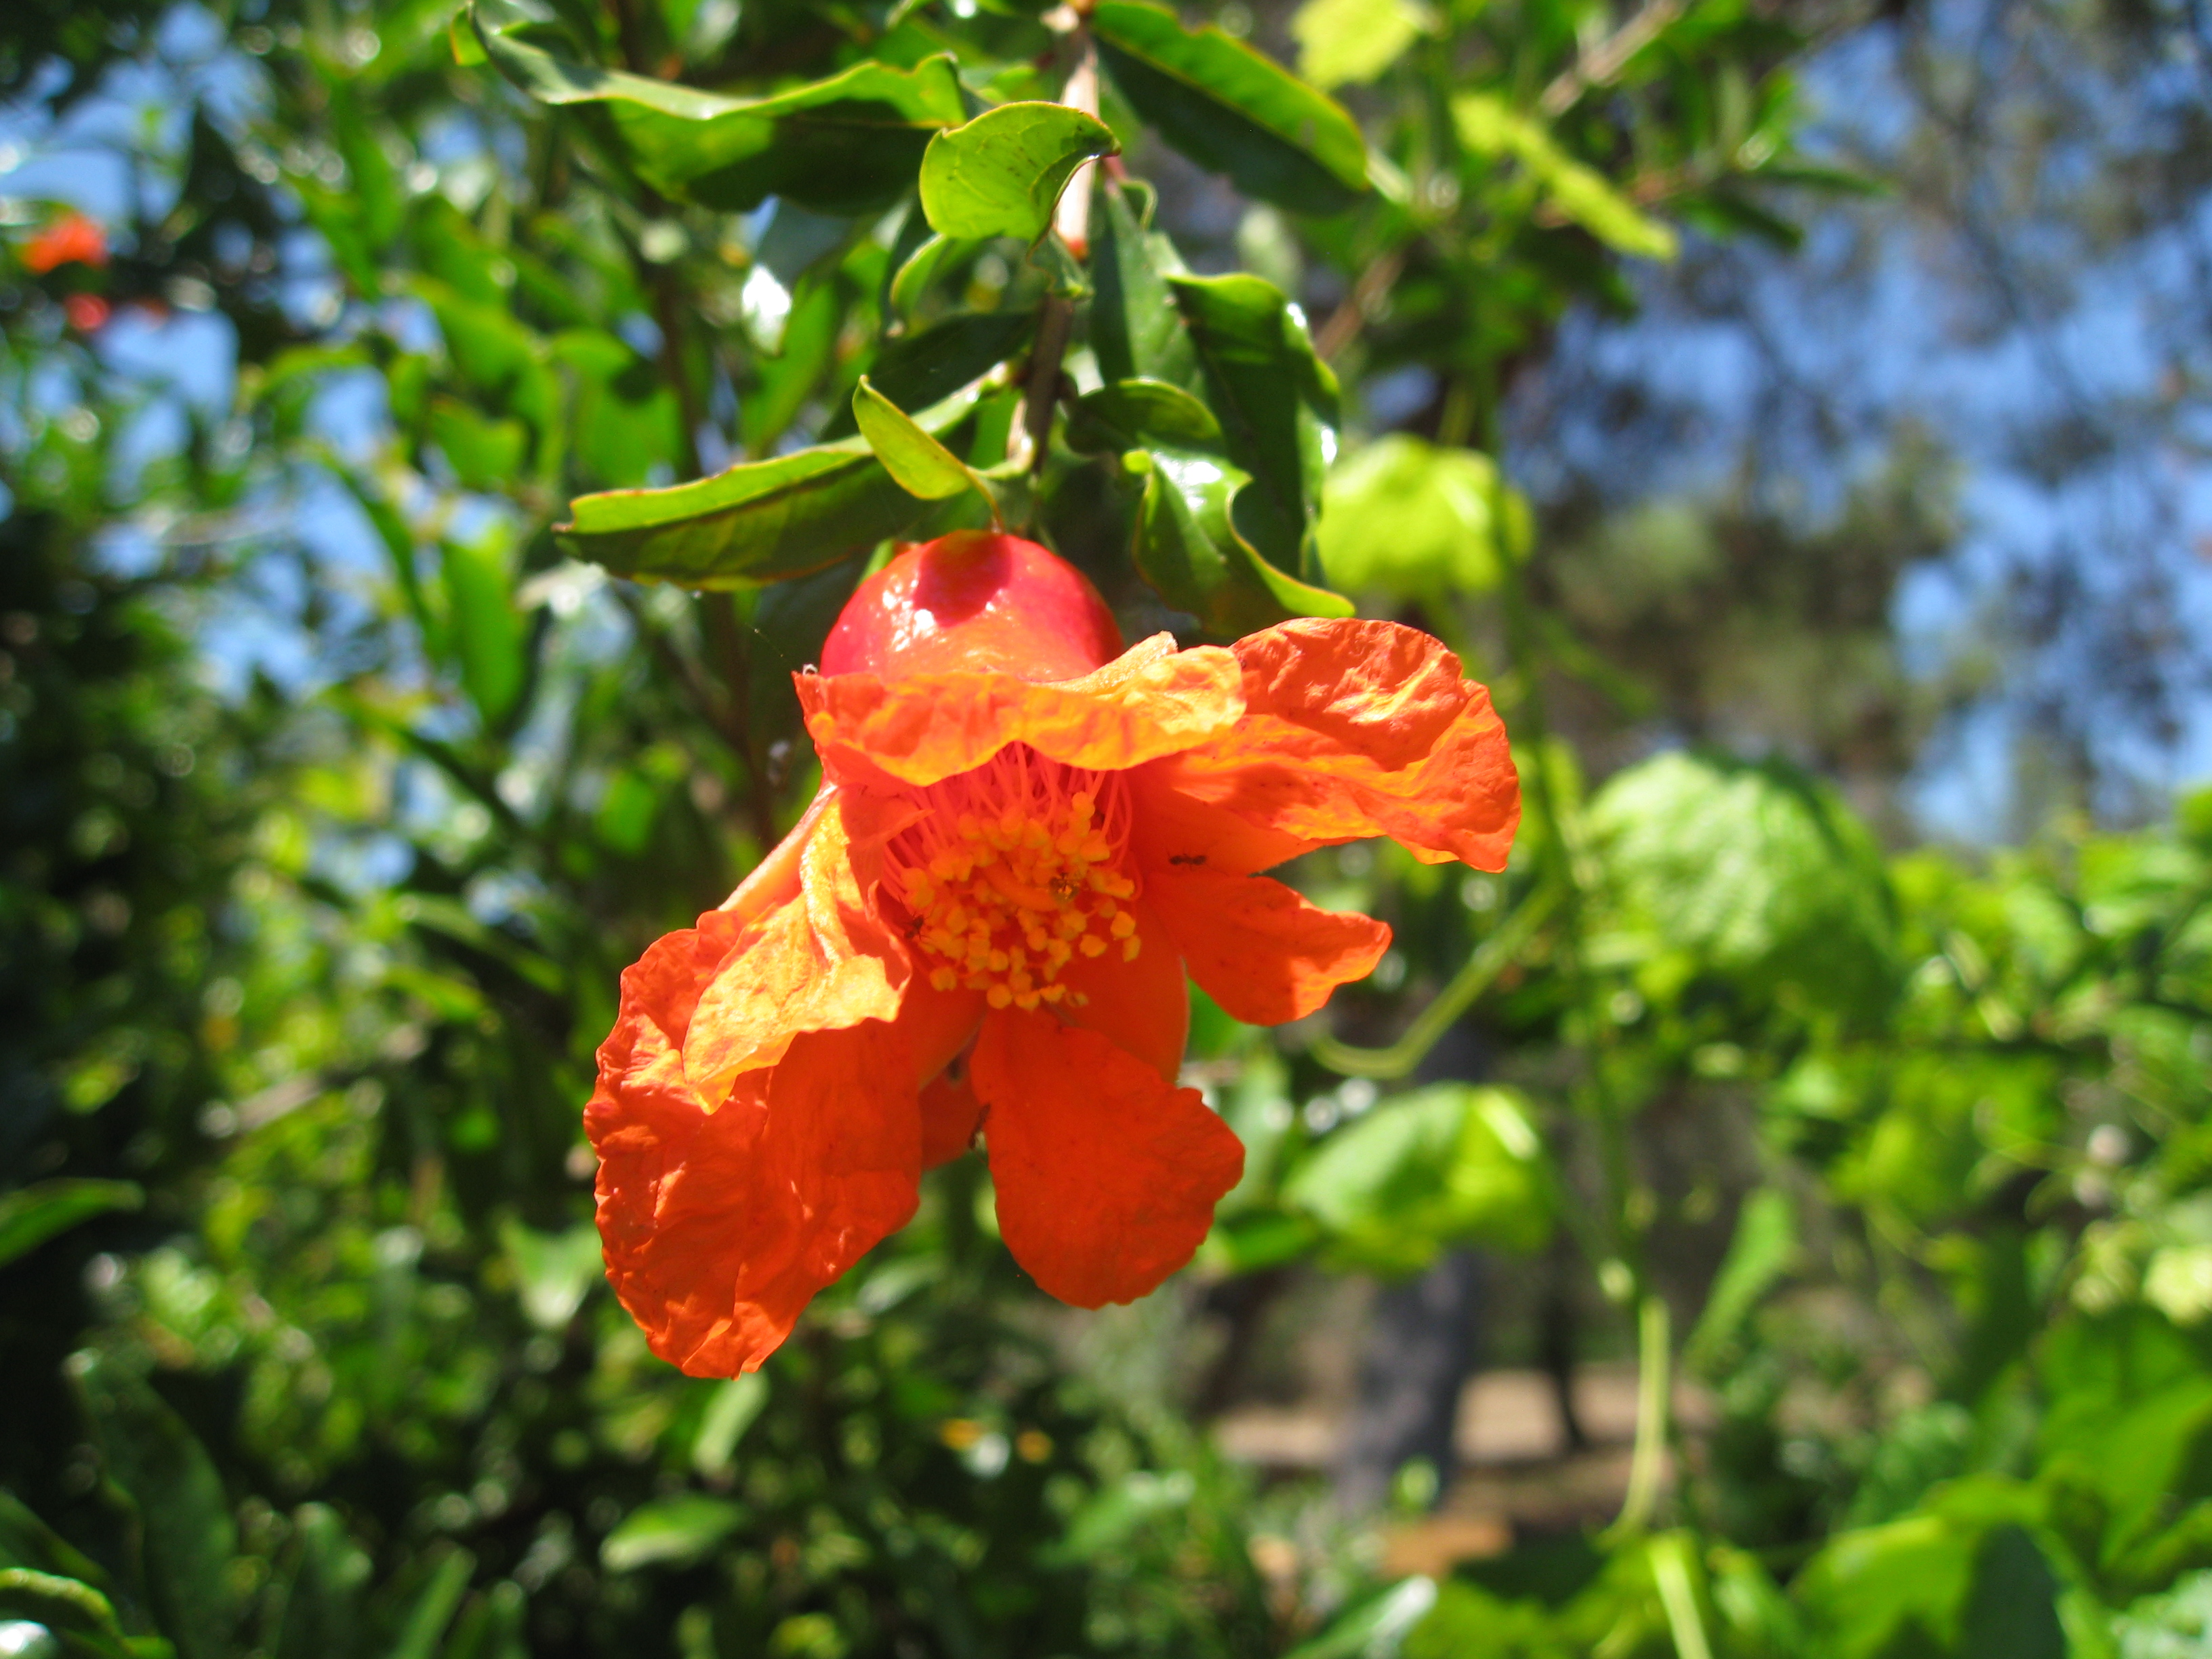 A Pomegranate tree in flower hangs into the pathway.